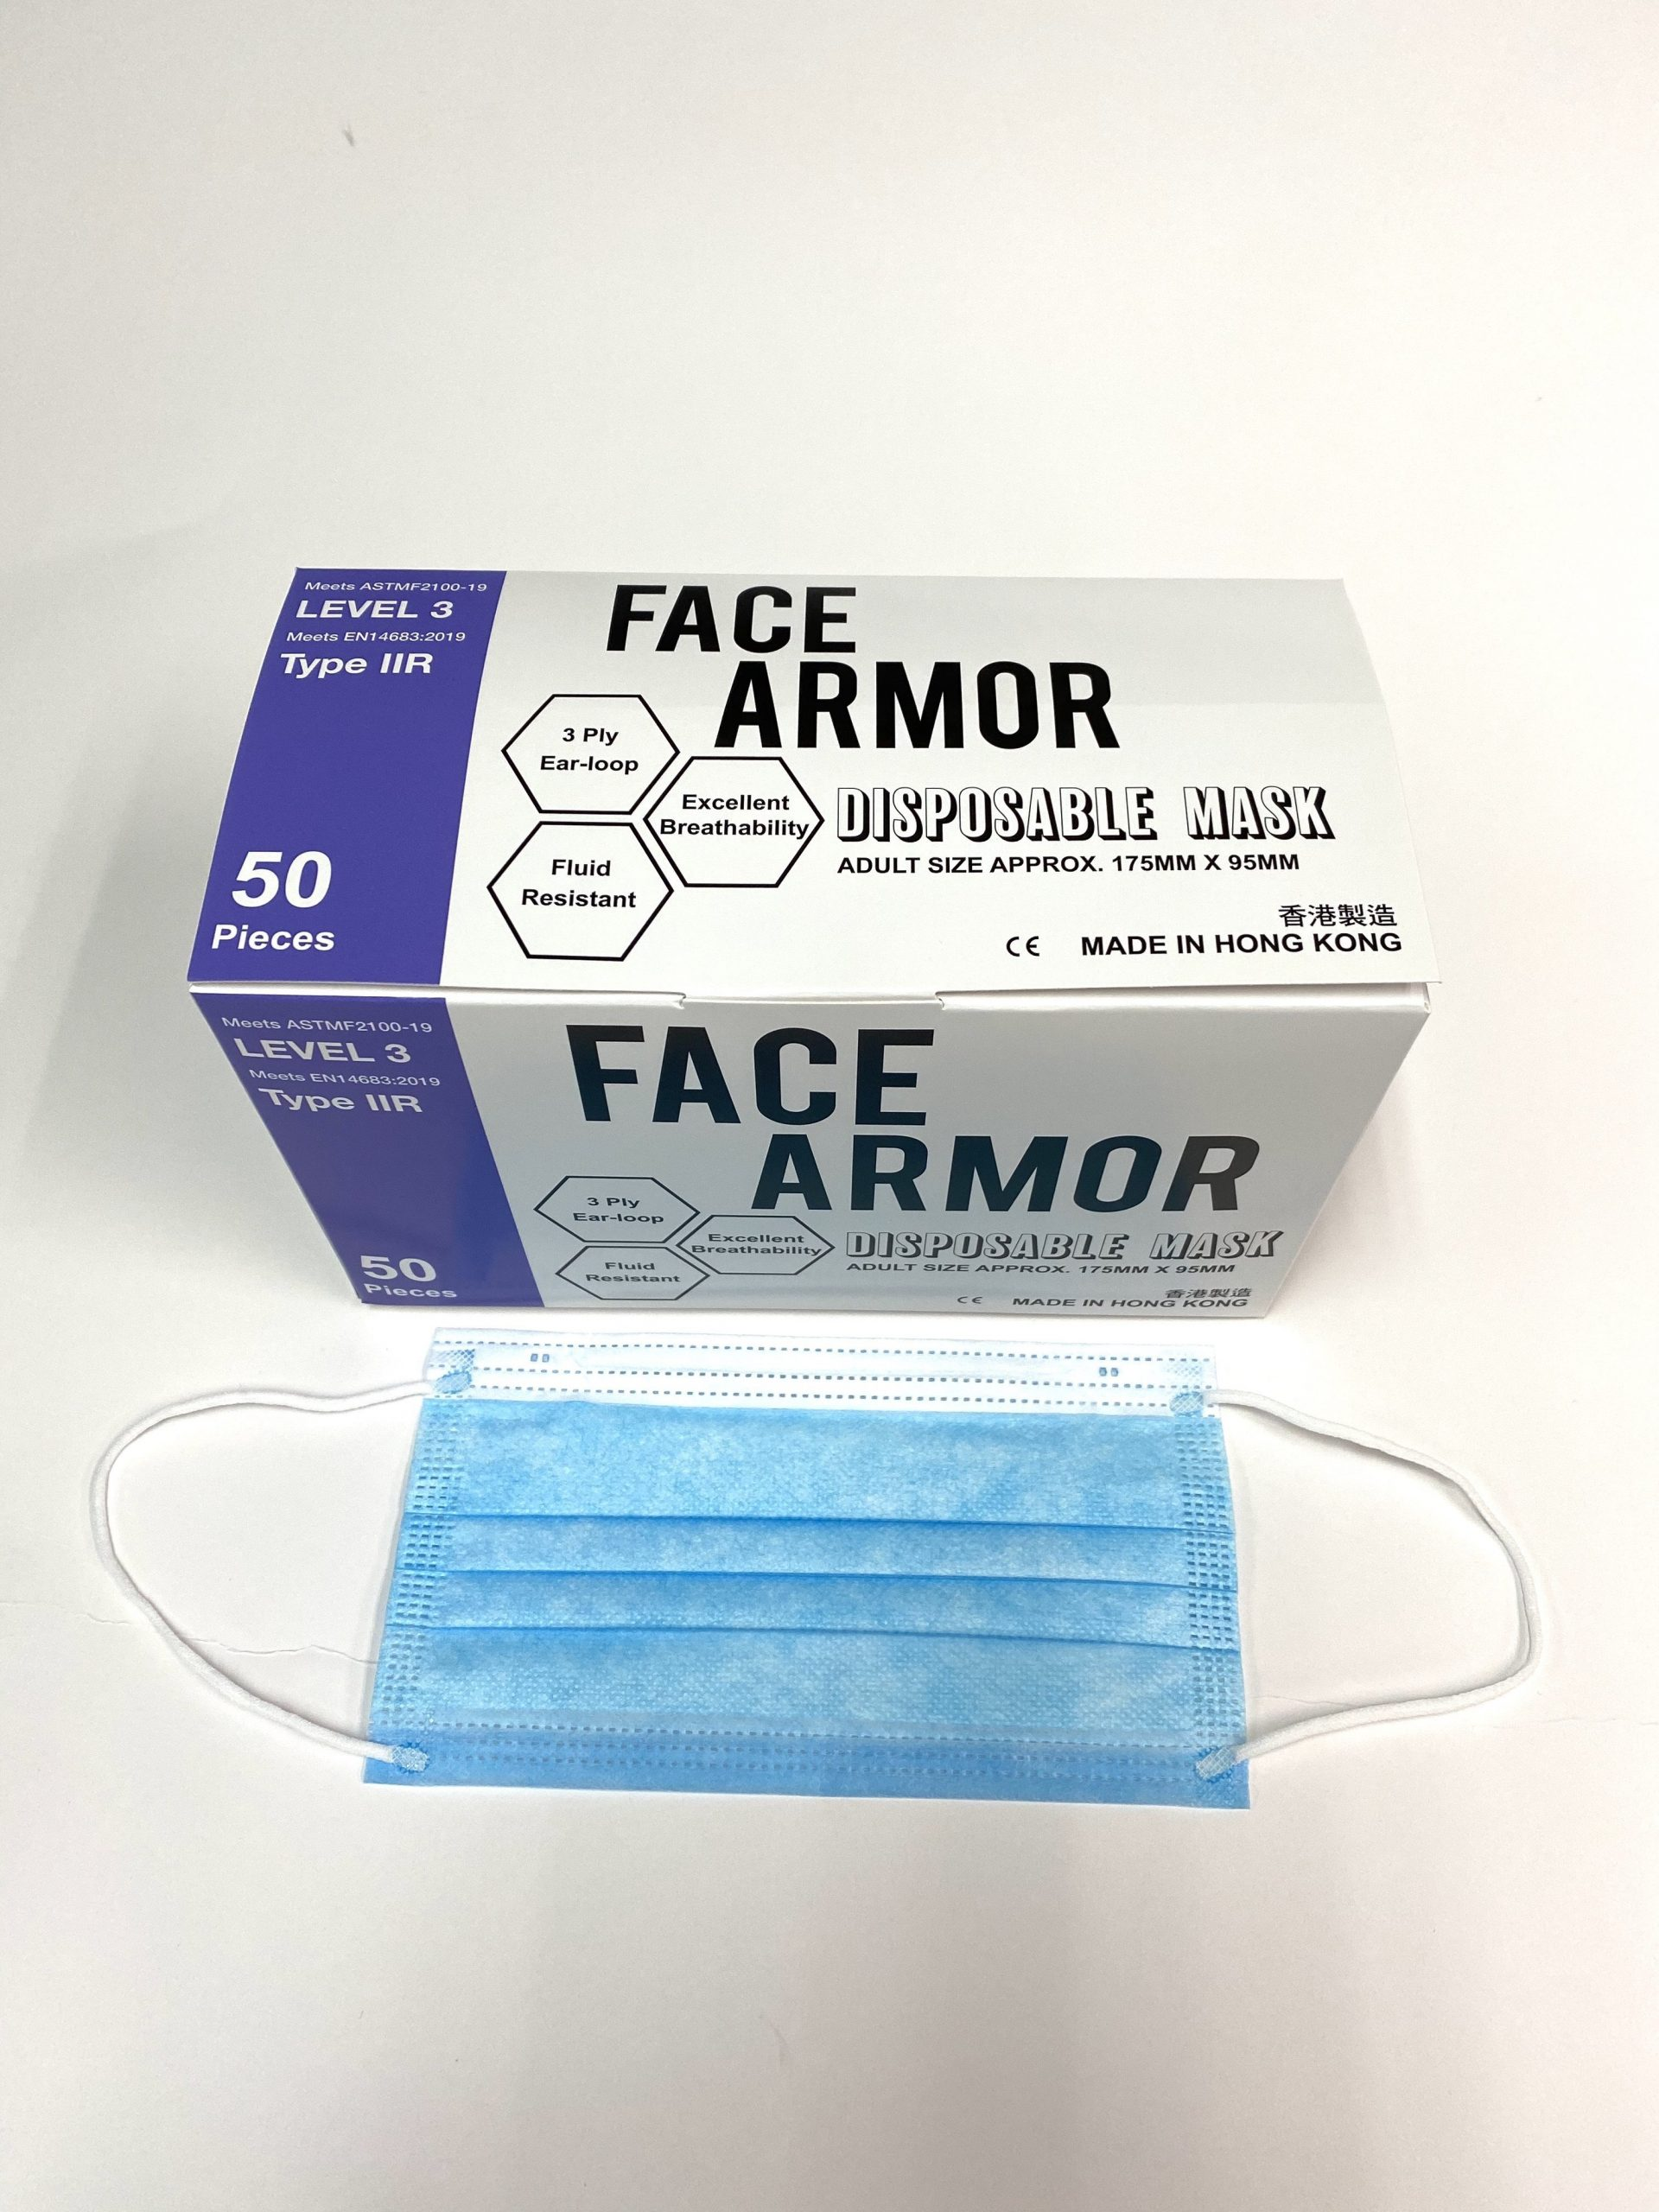 Face Armor Disposable Masks | ASTM LEVEL 3 | Made in Hong Kong| 50 PIECES | BLUE